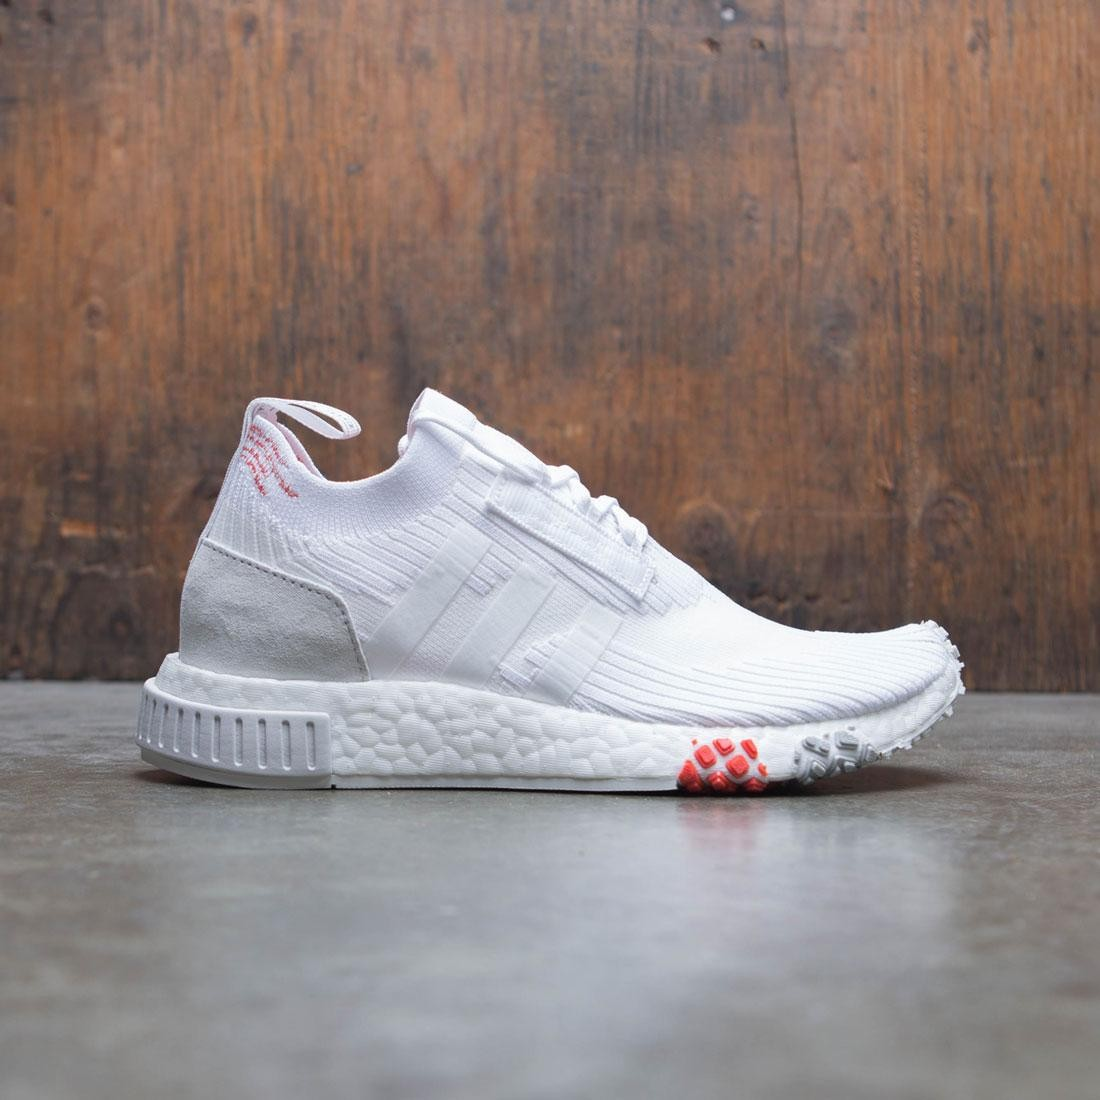 photos officielles 4b86a 03644 Adidas Women NMD Racer PK W (white / footwear white / trace scarlet)